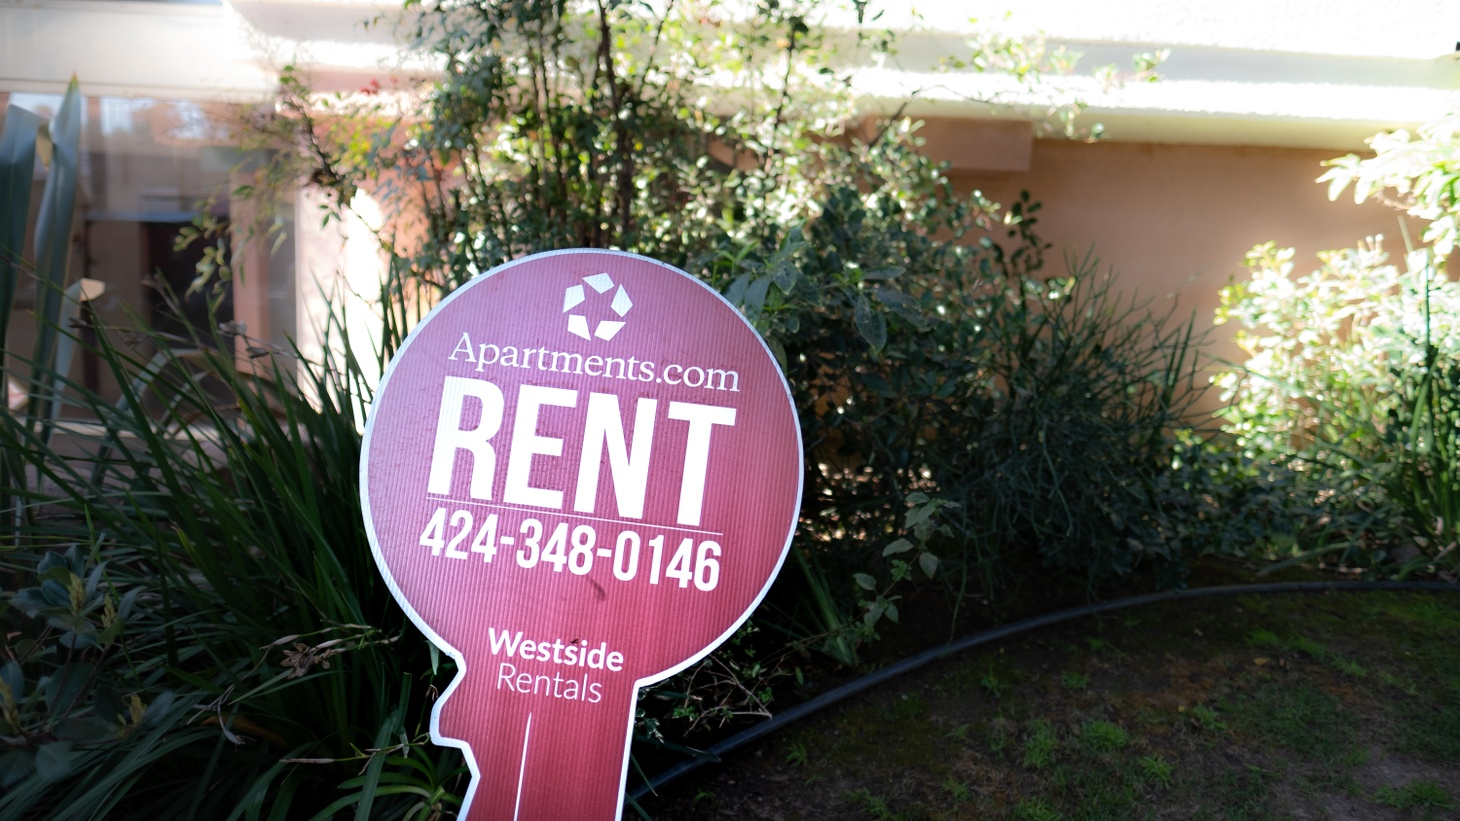 An apartments.com rental sign on Cardiff Ave in Palms, Los Angeles. This week, LA officials unveiled a $259 million rental relief fund with priority for low-income residents.